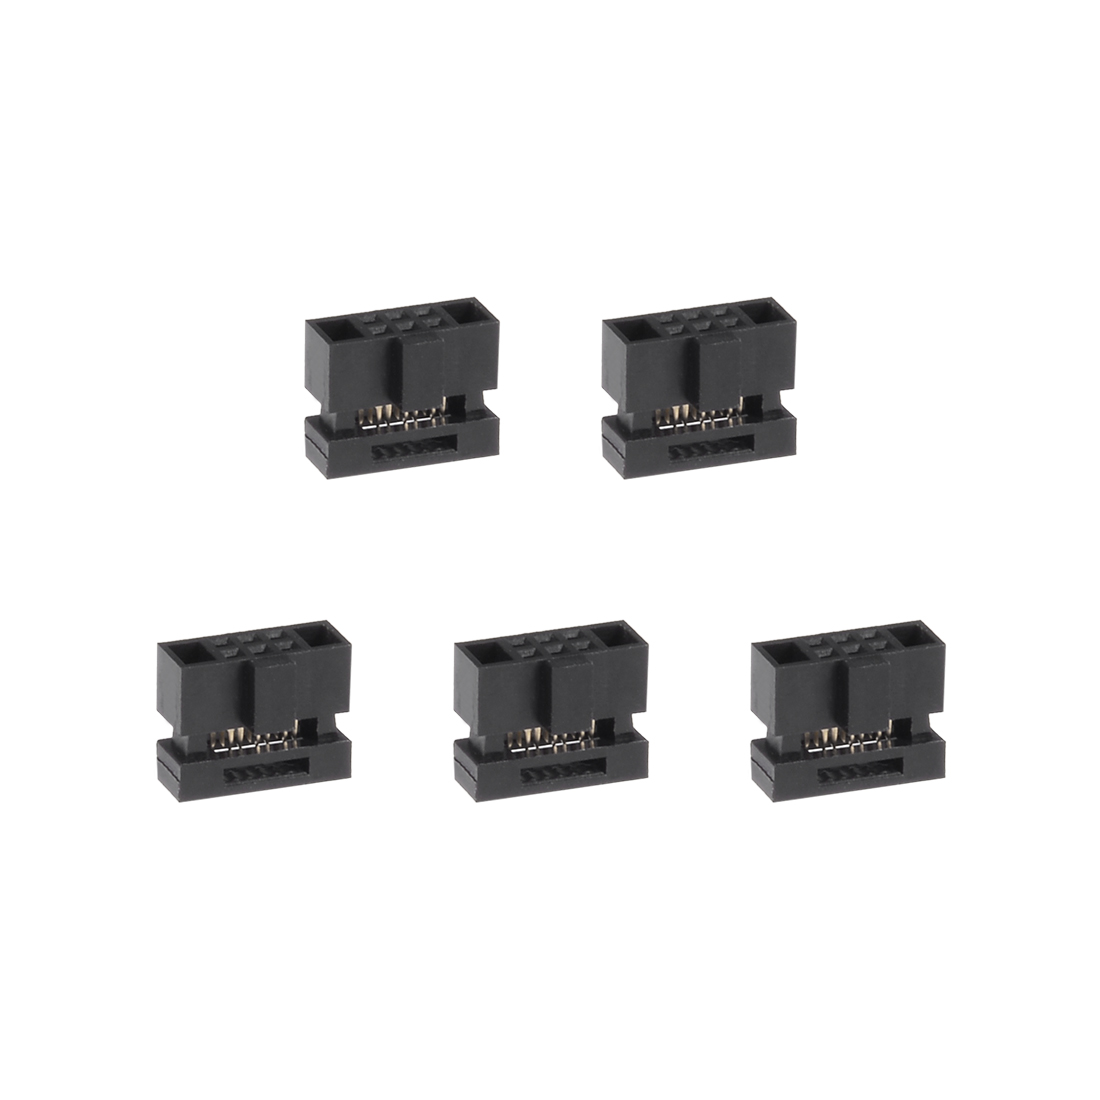 5Pcs 2x9Pin 1.27mm Pitch Double Rows Straight Connector IDC FC Ejector Header